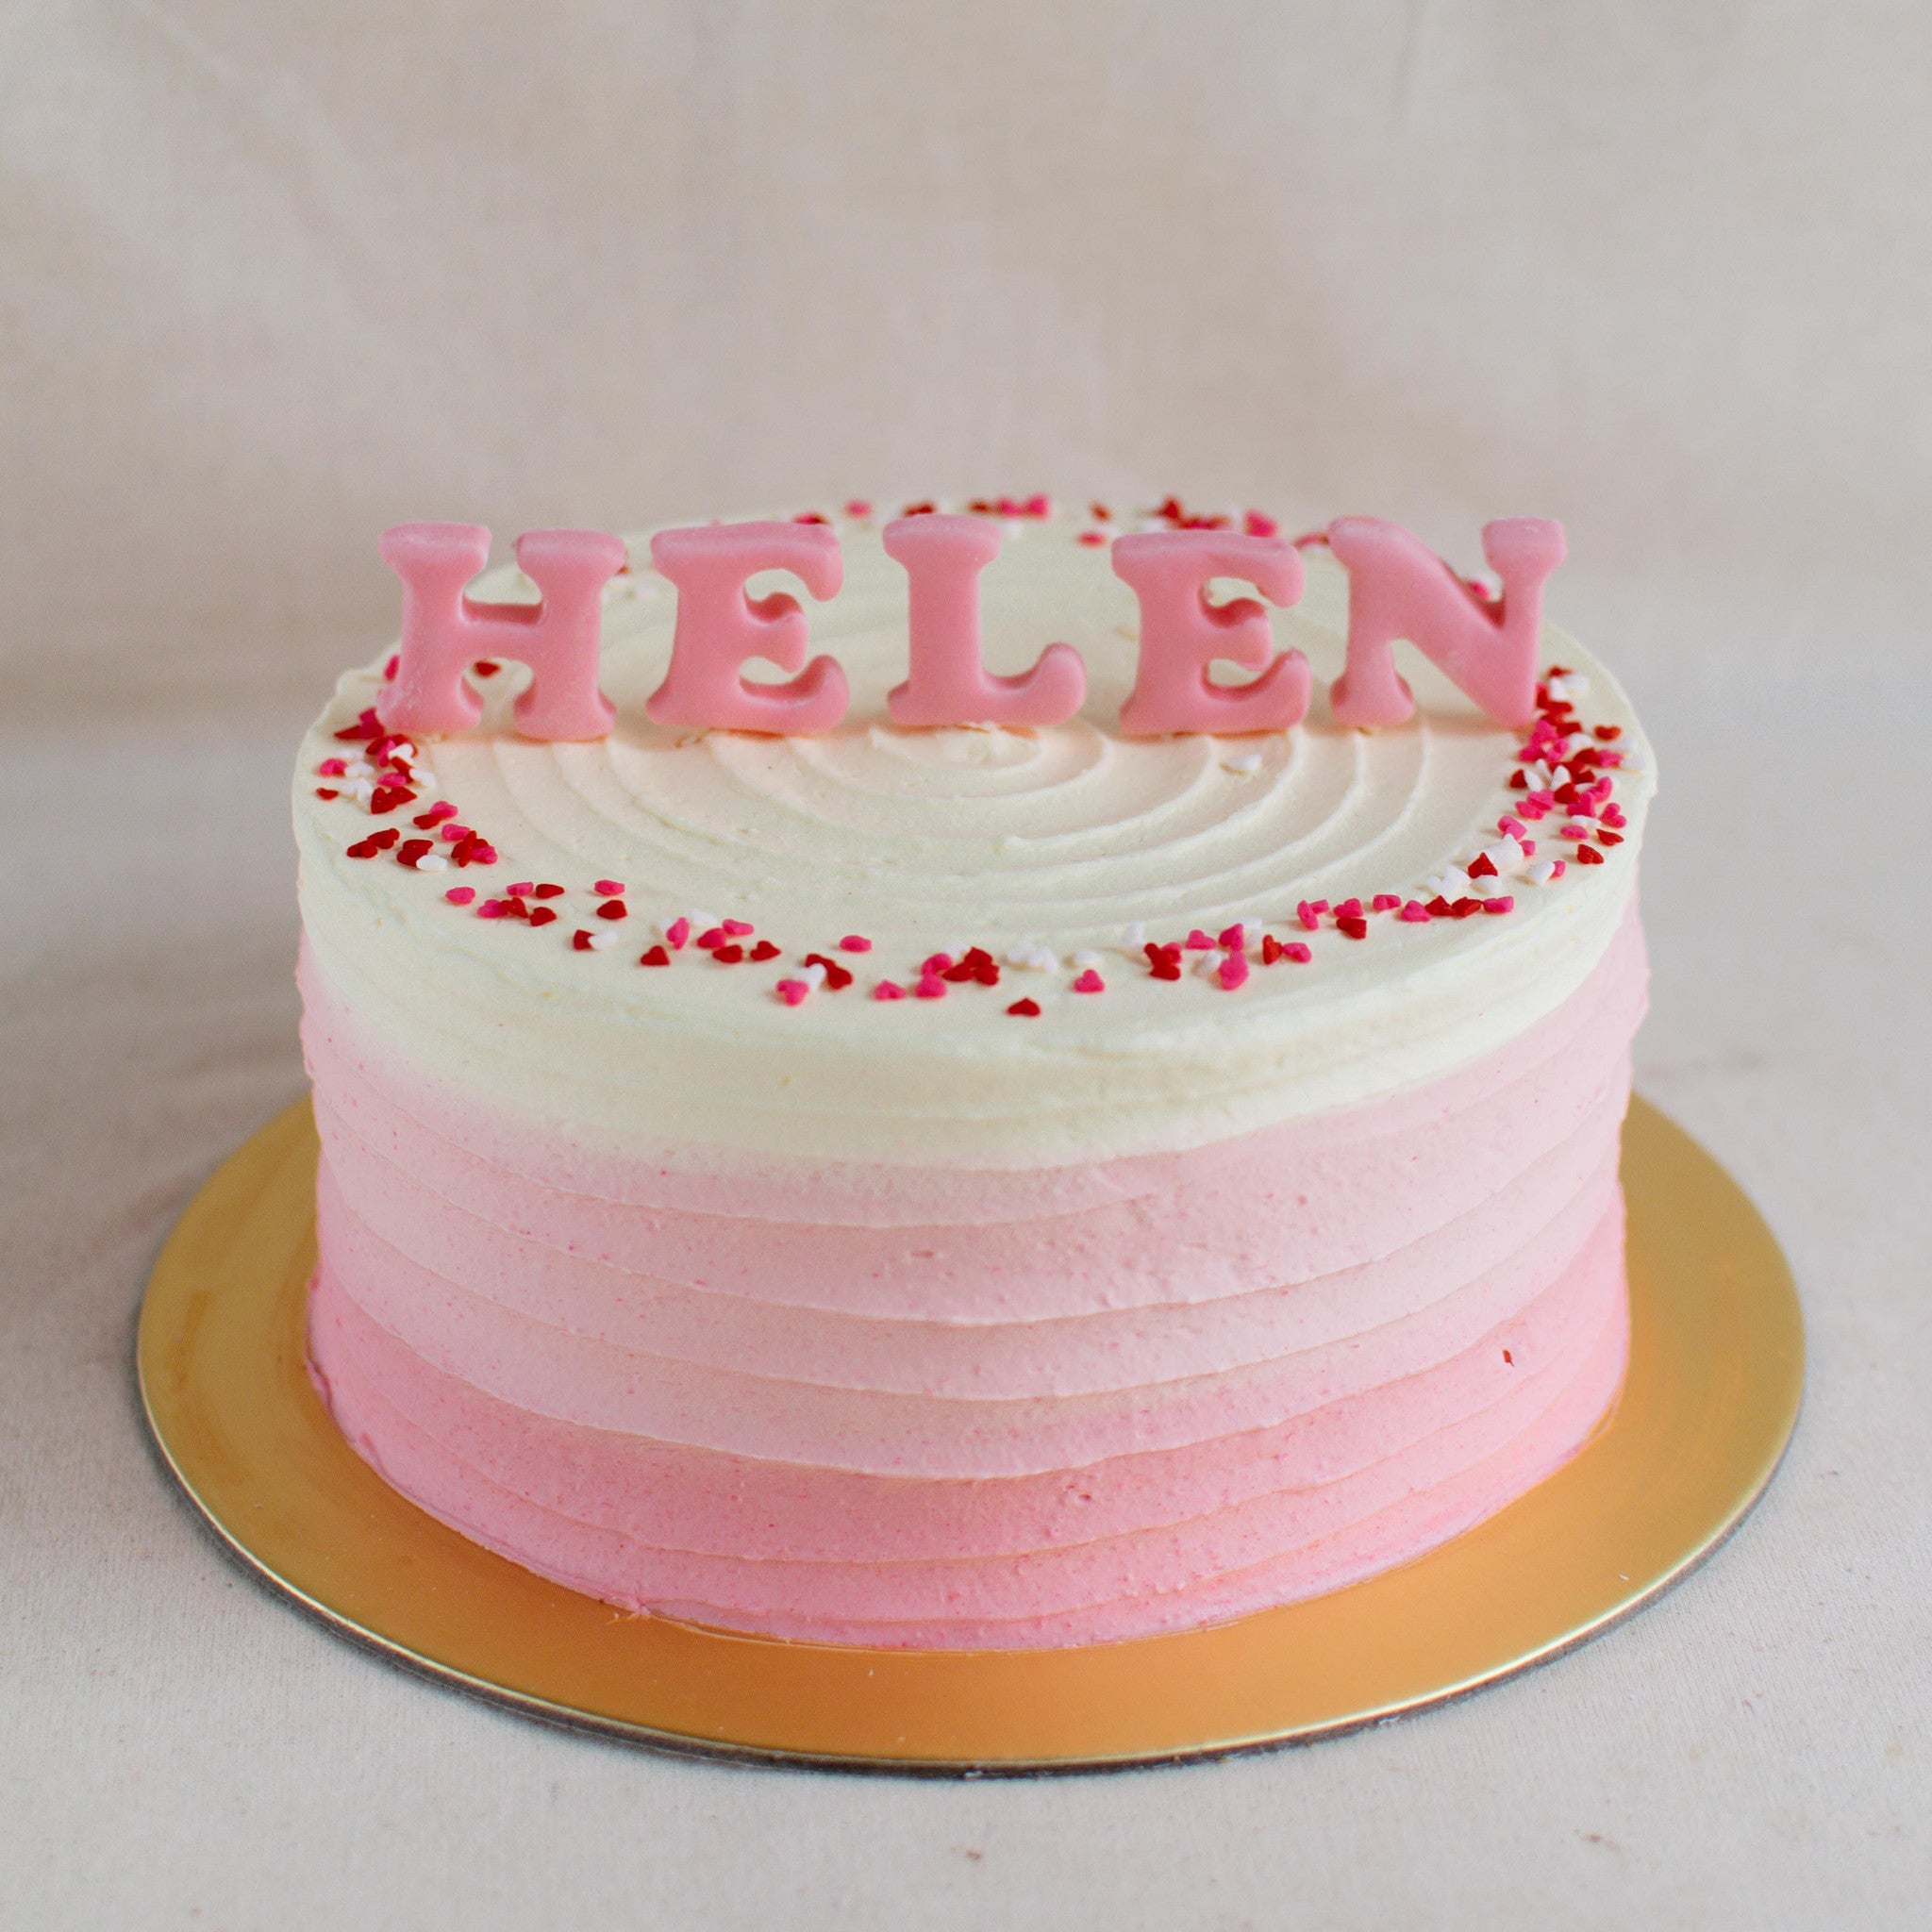 Fondant Name - Custom Bakes by Edith Patisserie